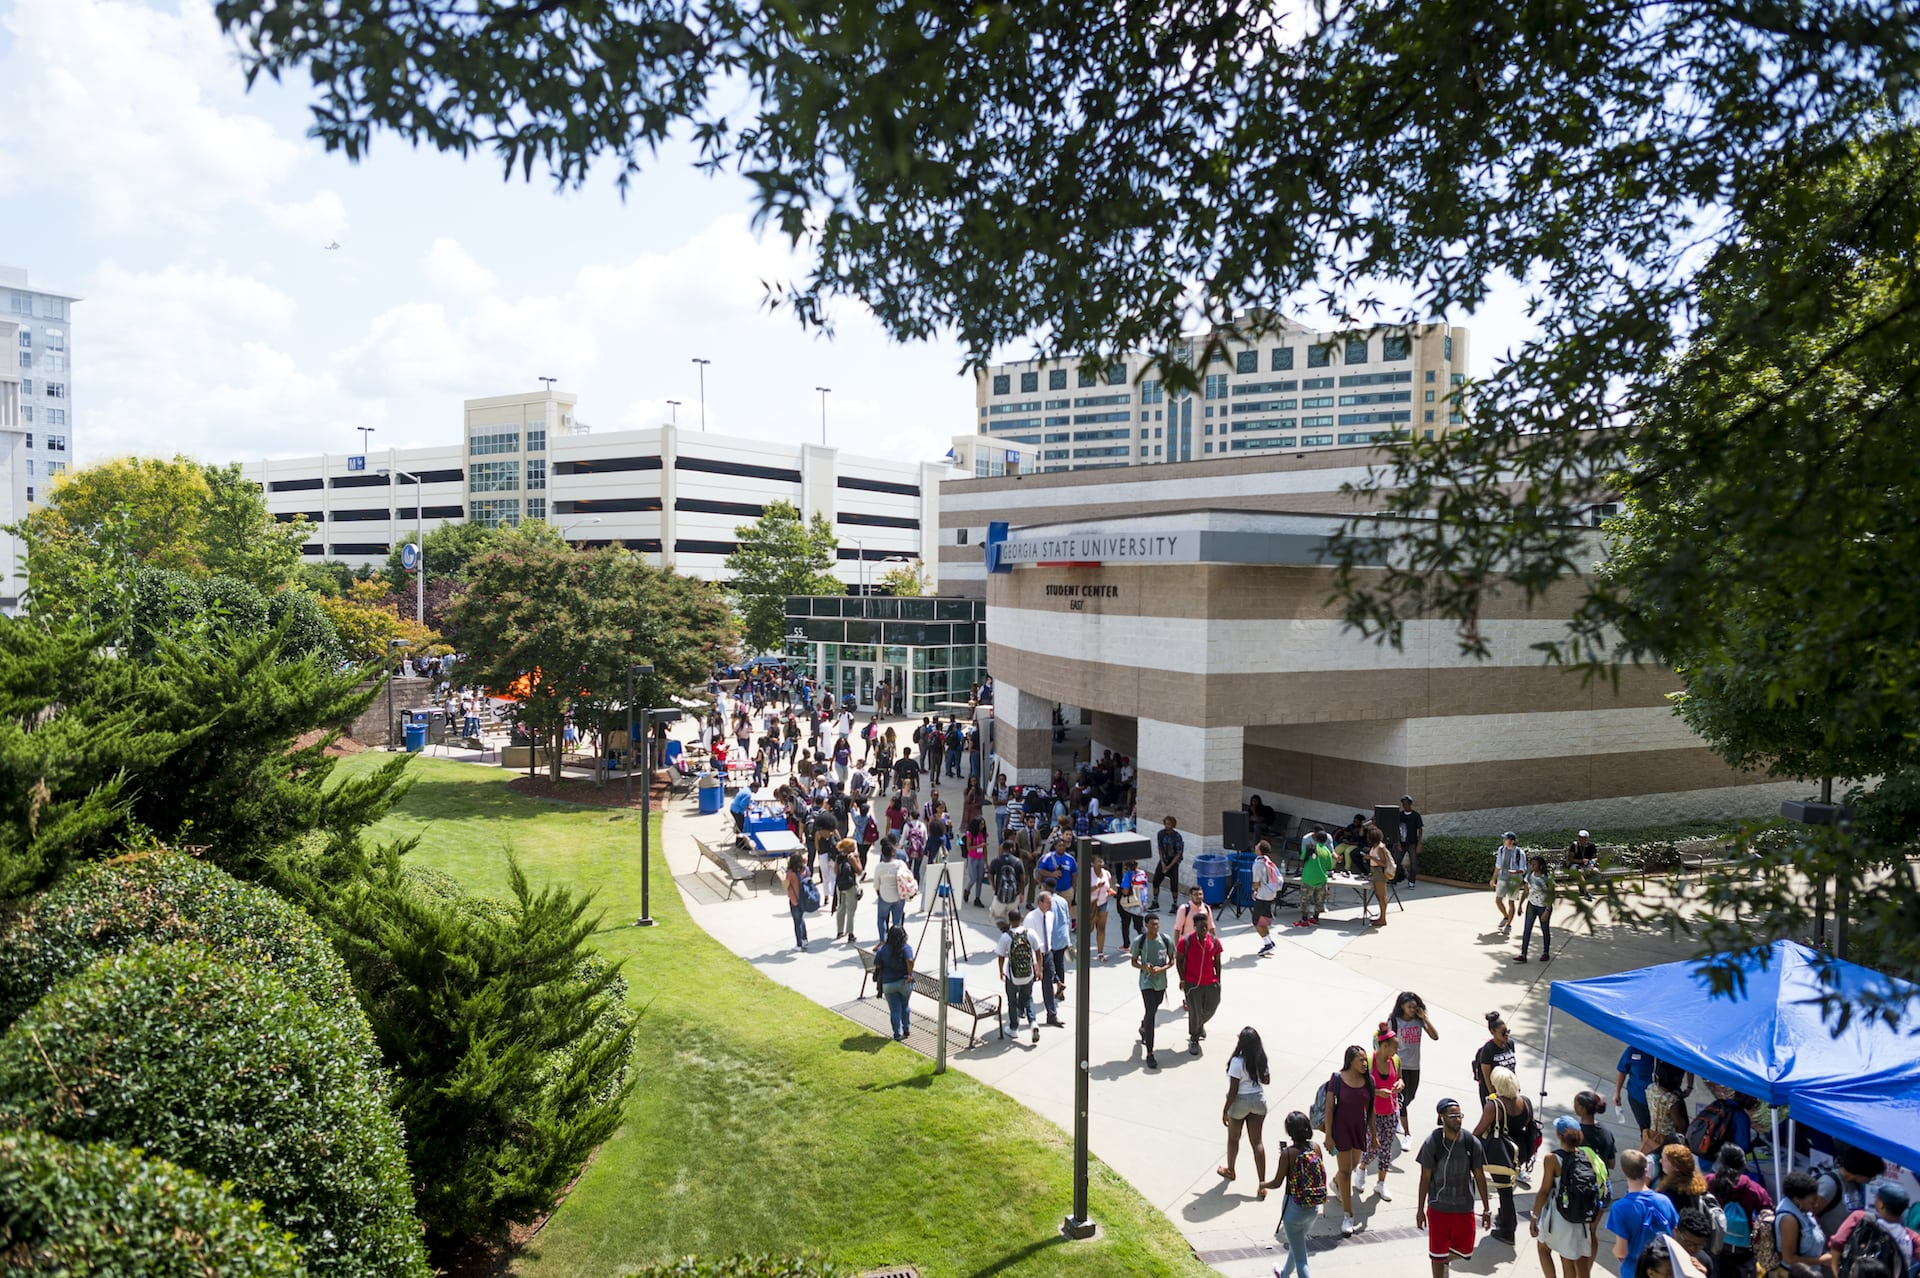 10 Buildings You Need to Know at Georgia State University